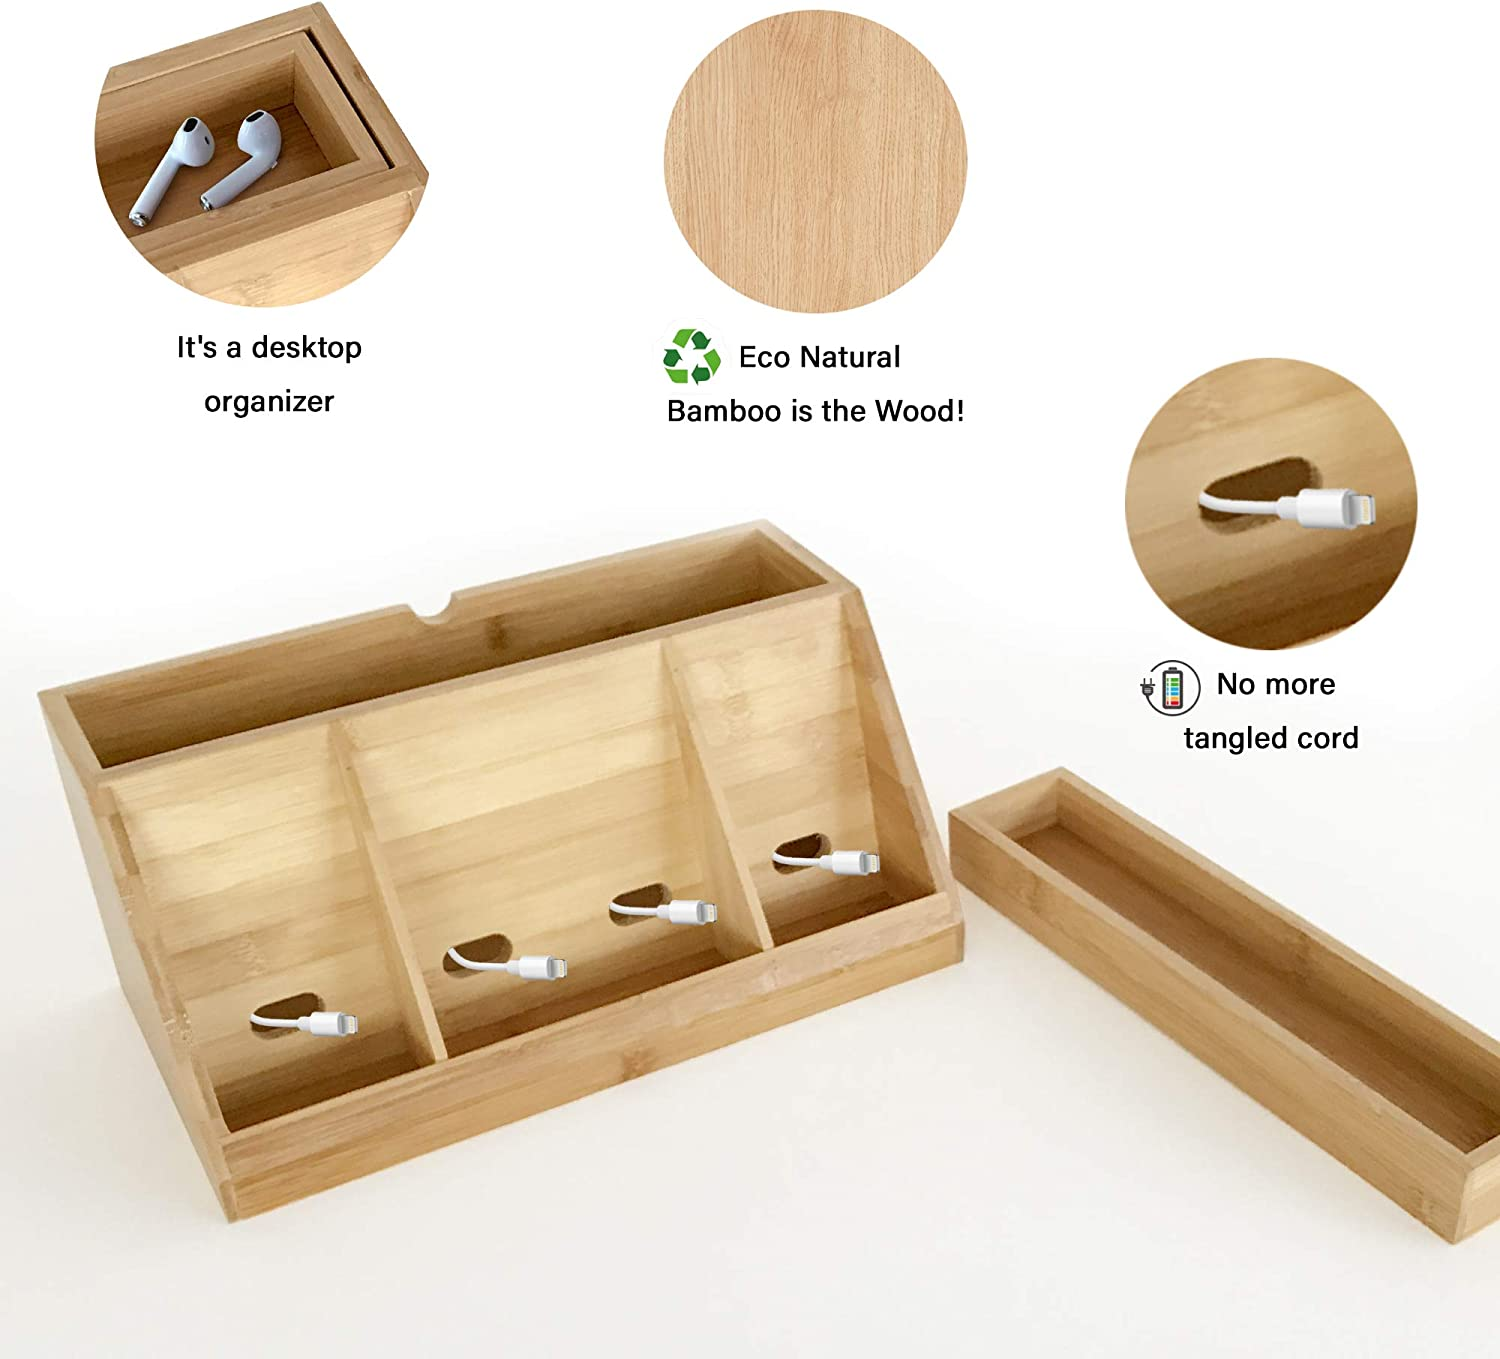 Bamboo Docking Phone Station Apple watc iPhone Shelf Charger and Stand Organizer Tech Gadget Box for Ipad Samsung Wood Charging Station for Apple Products and Wireless Devices Tablets Airpods